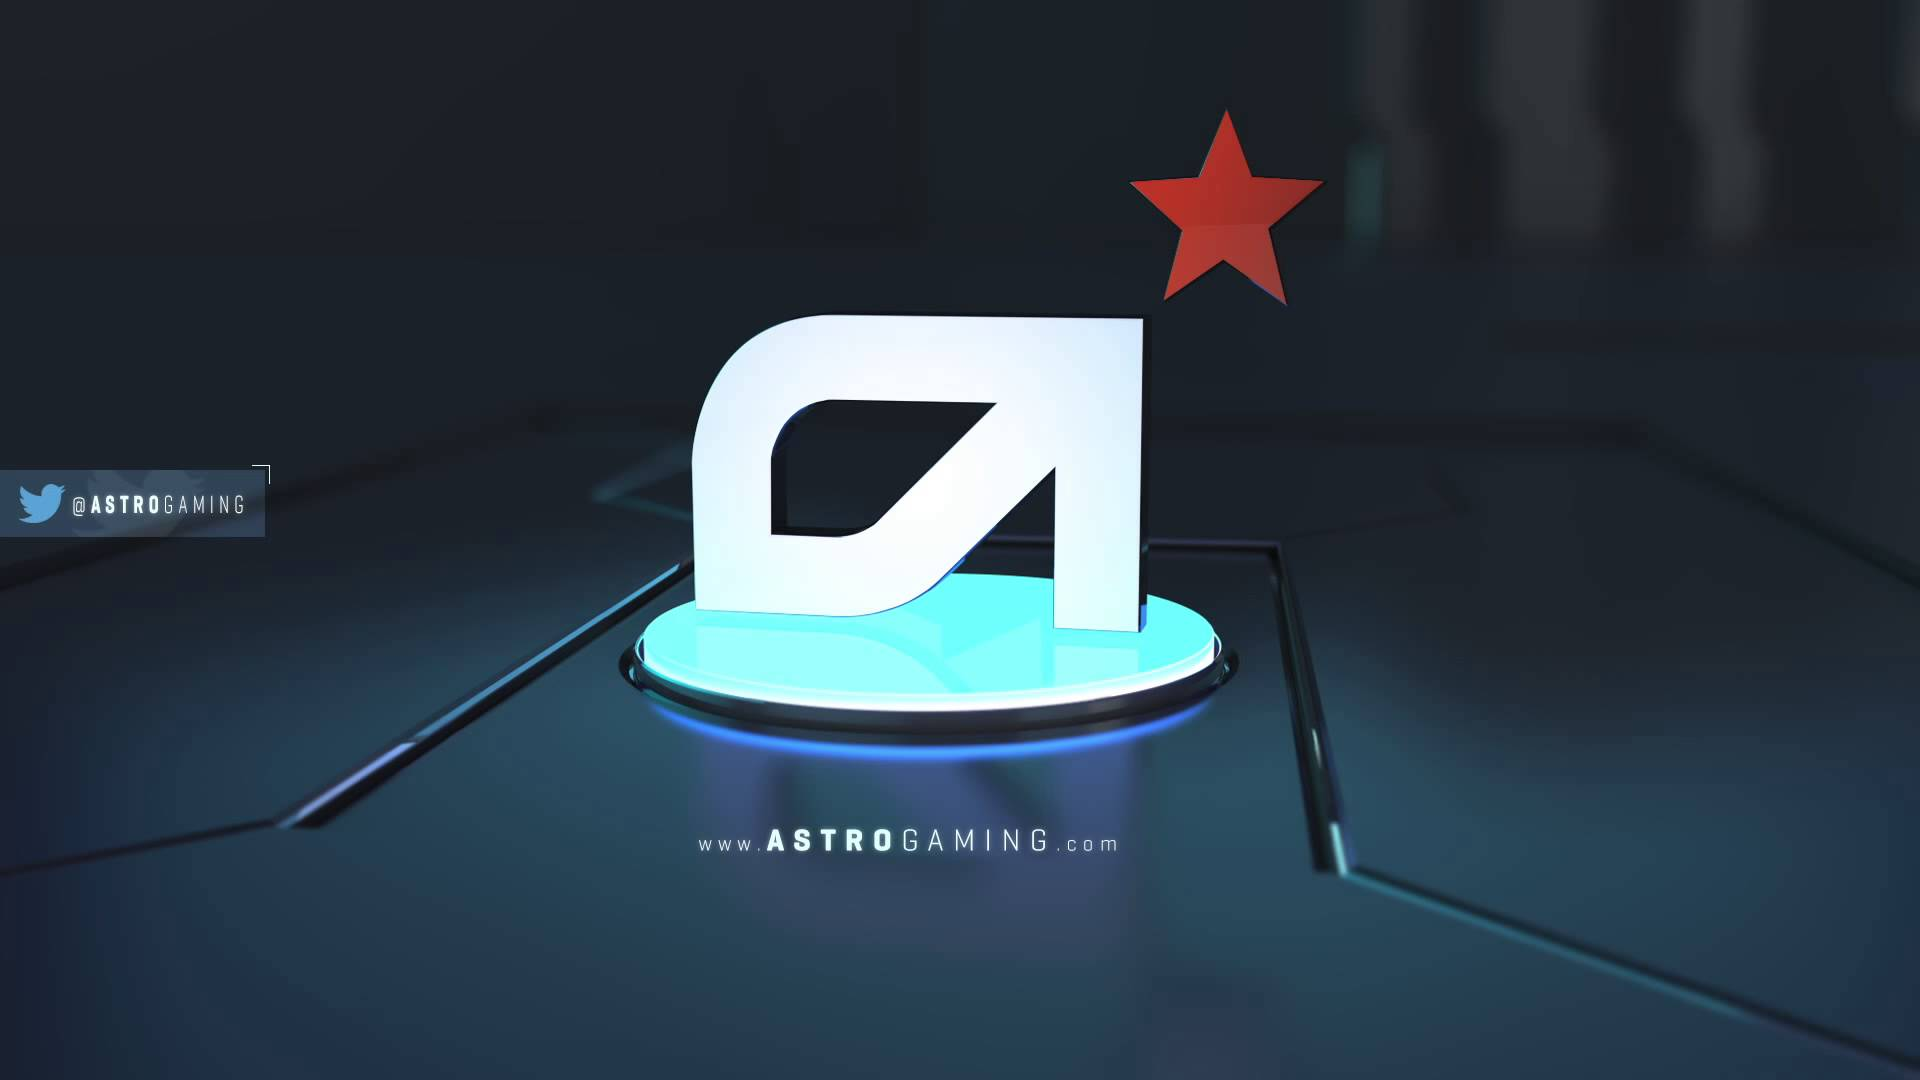 Astro Gaming Wallpapers 1920x1080